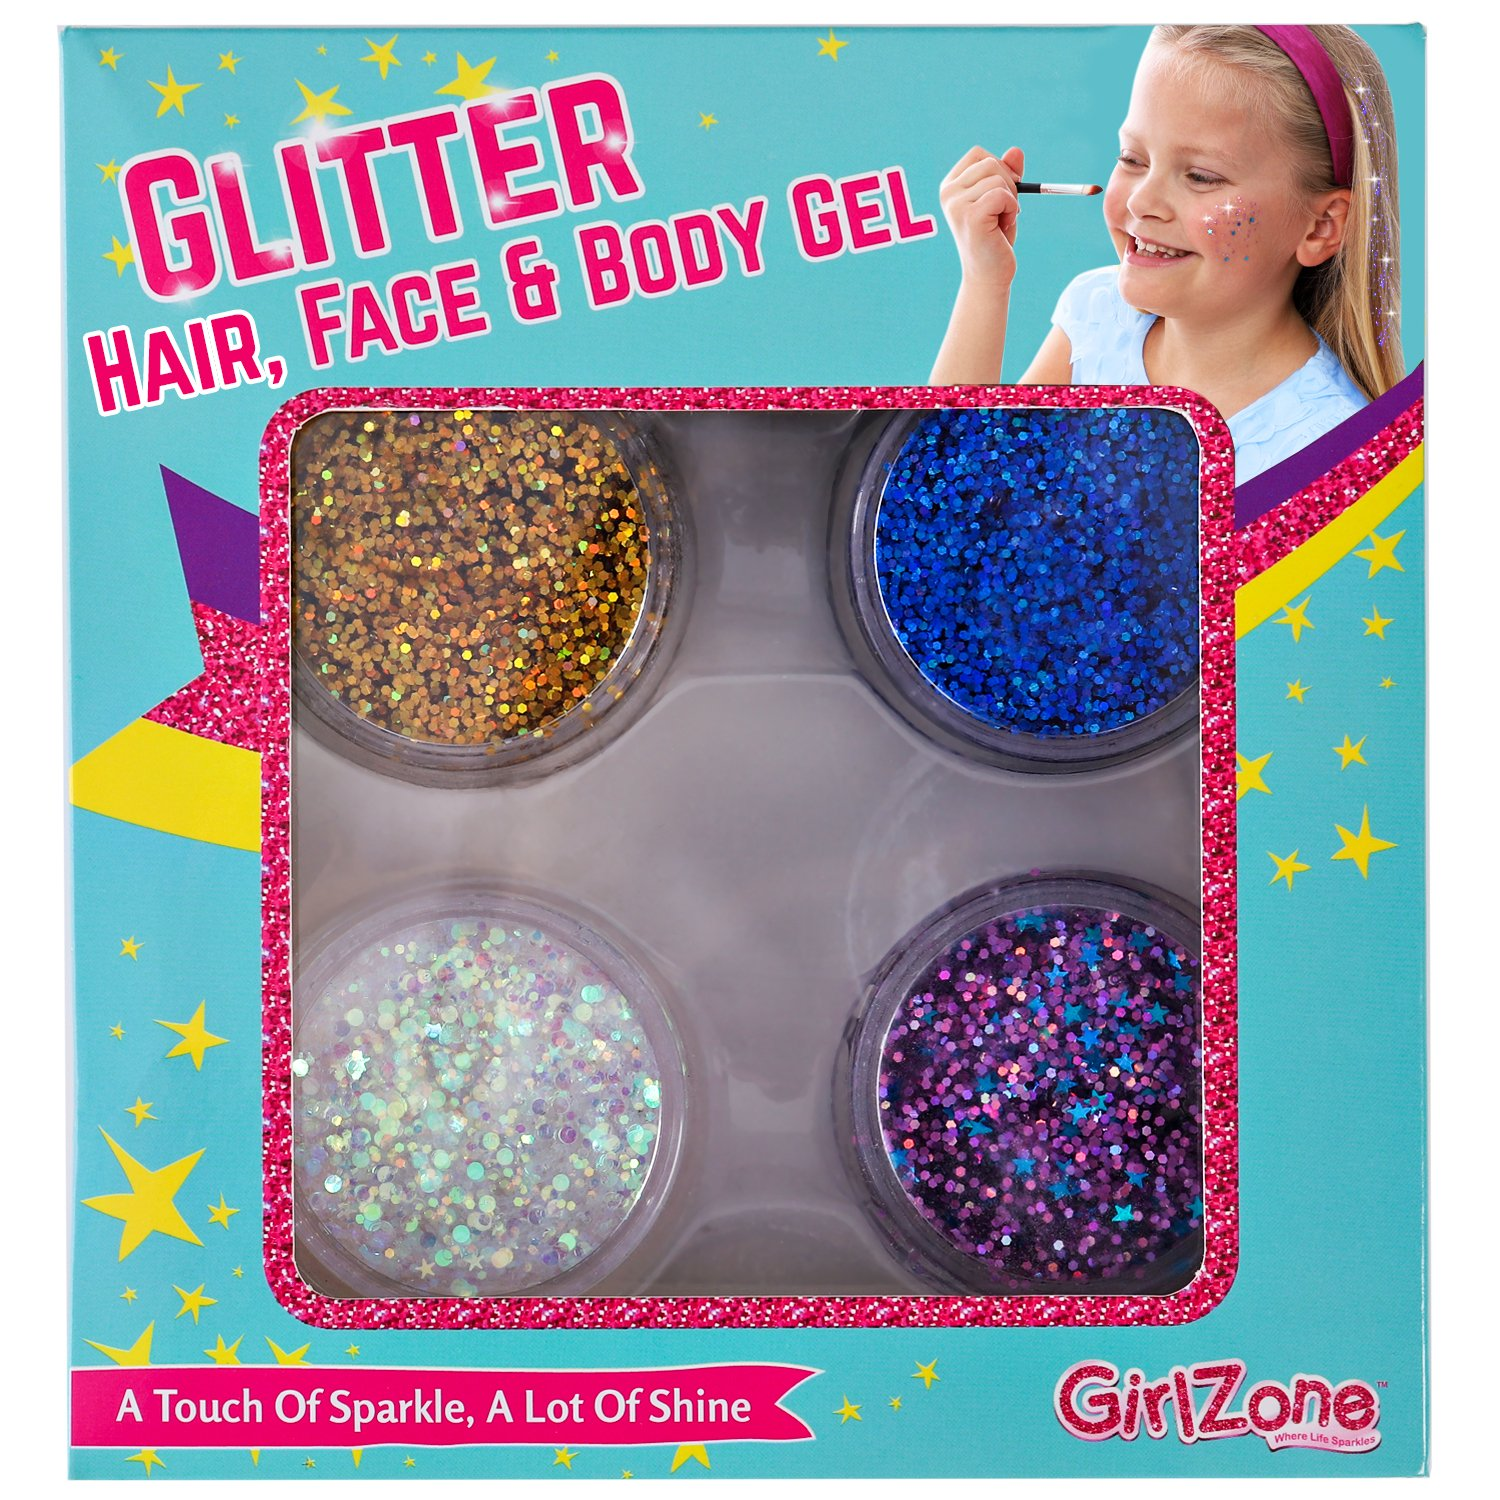 GirlZone GIFTS FOR GIRLS: Face, Hair & Body Cosmetic Glitter Makeup. Great Gift, Birthday Present Idea For Girls 4 5 6 7 8 9 10 years old plus.